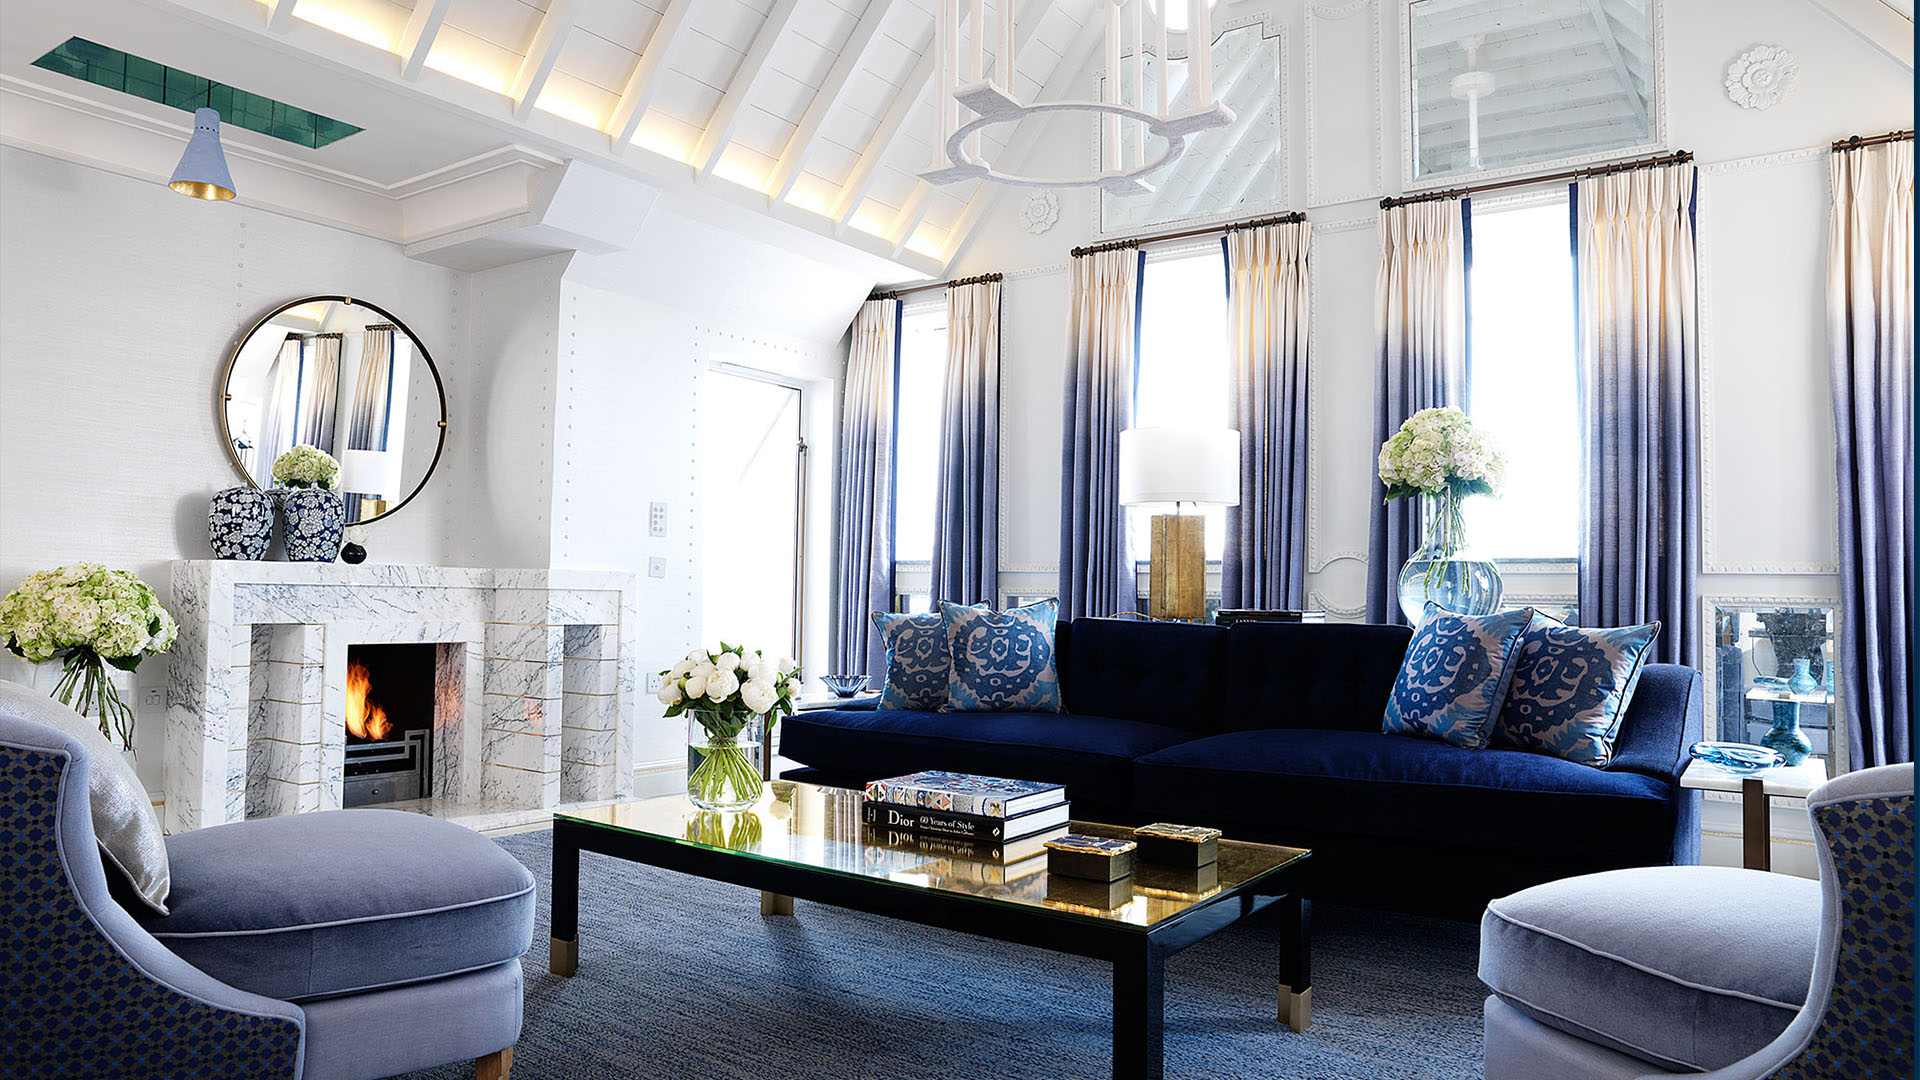 10 great living room projects by David Collins interior design